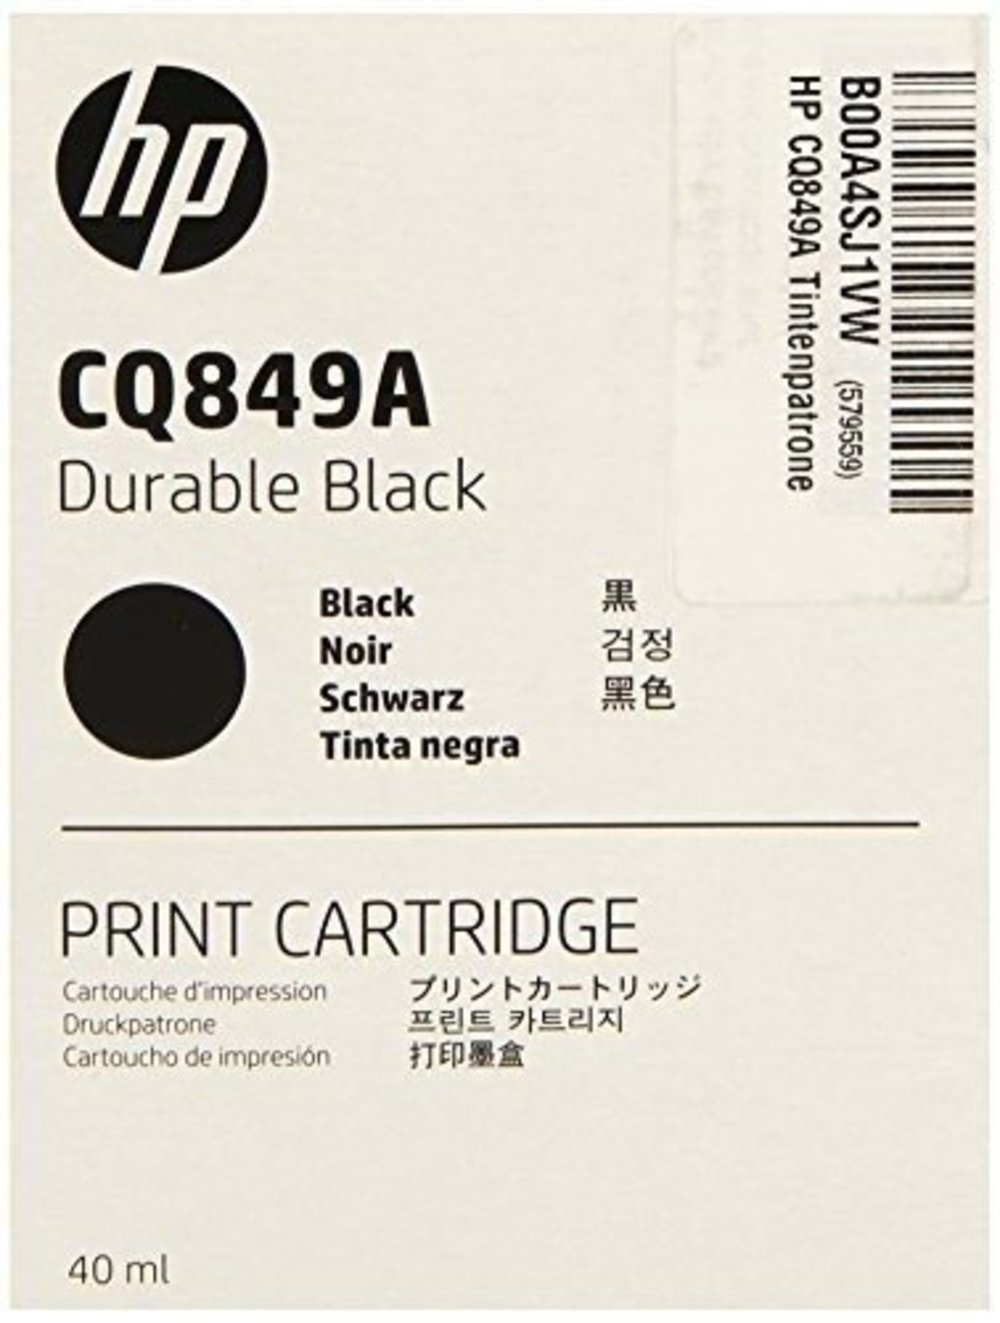 INK CARTRIDGE SPS